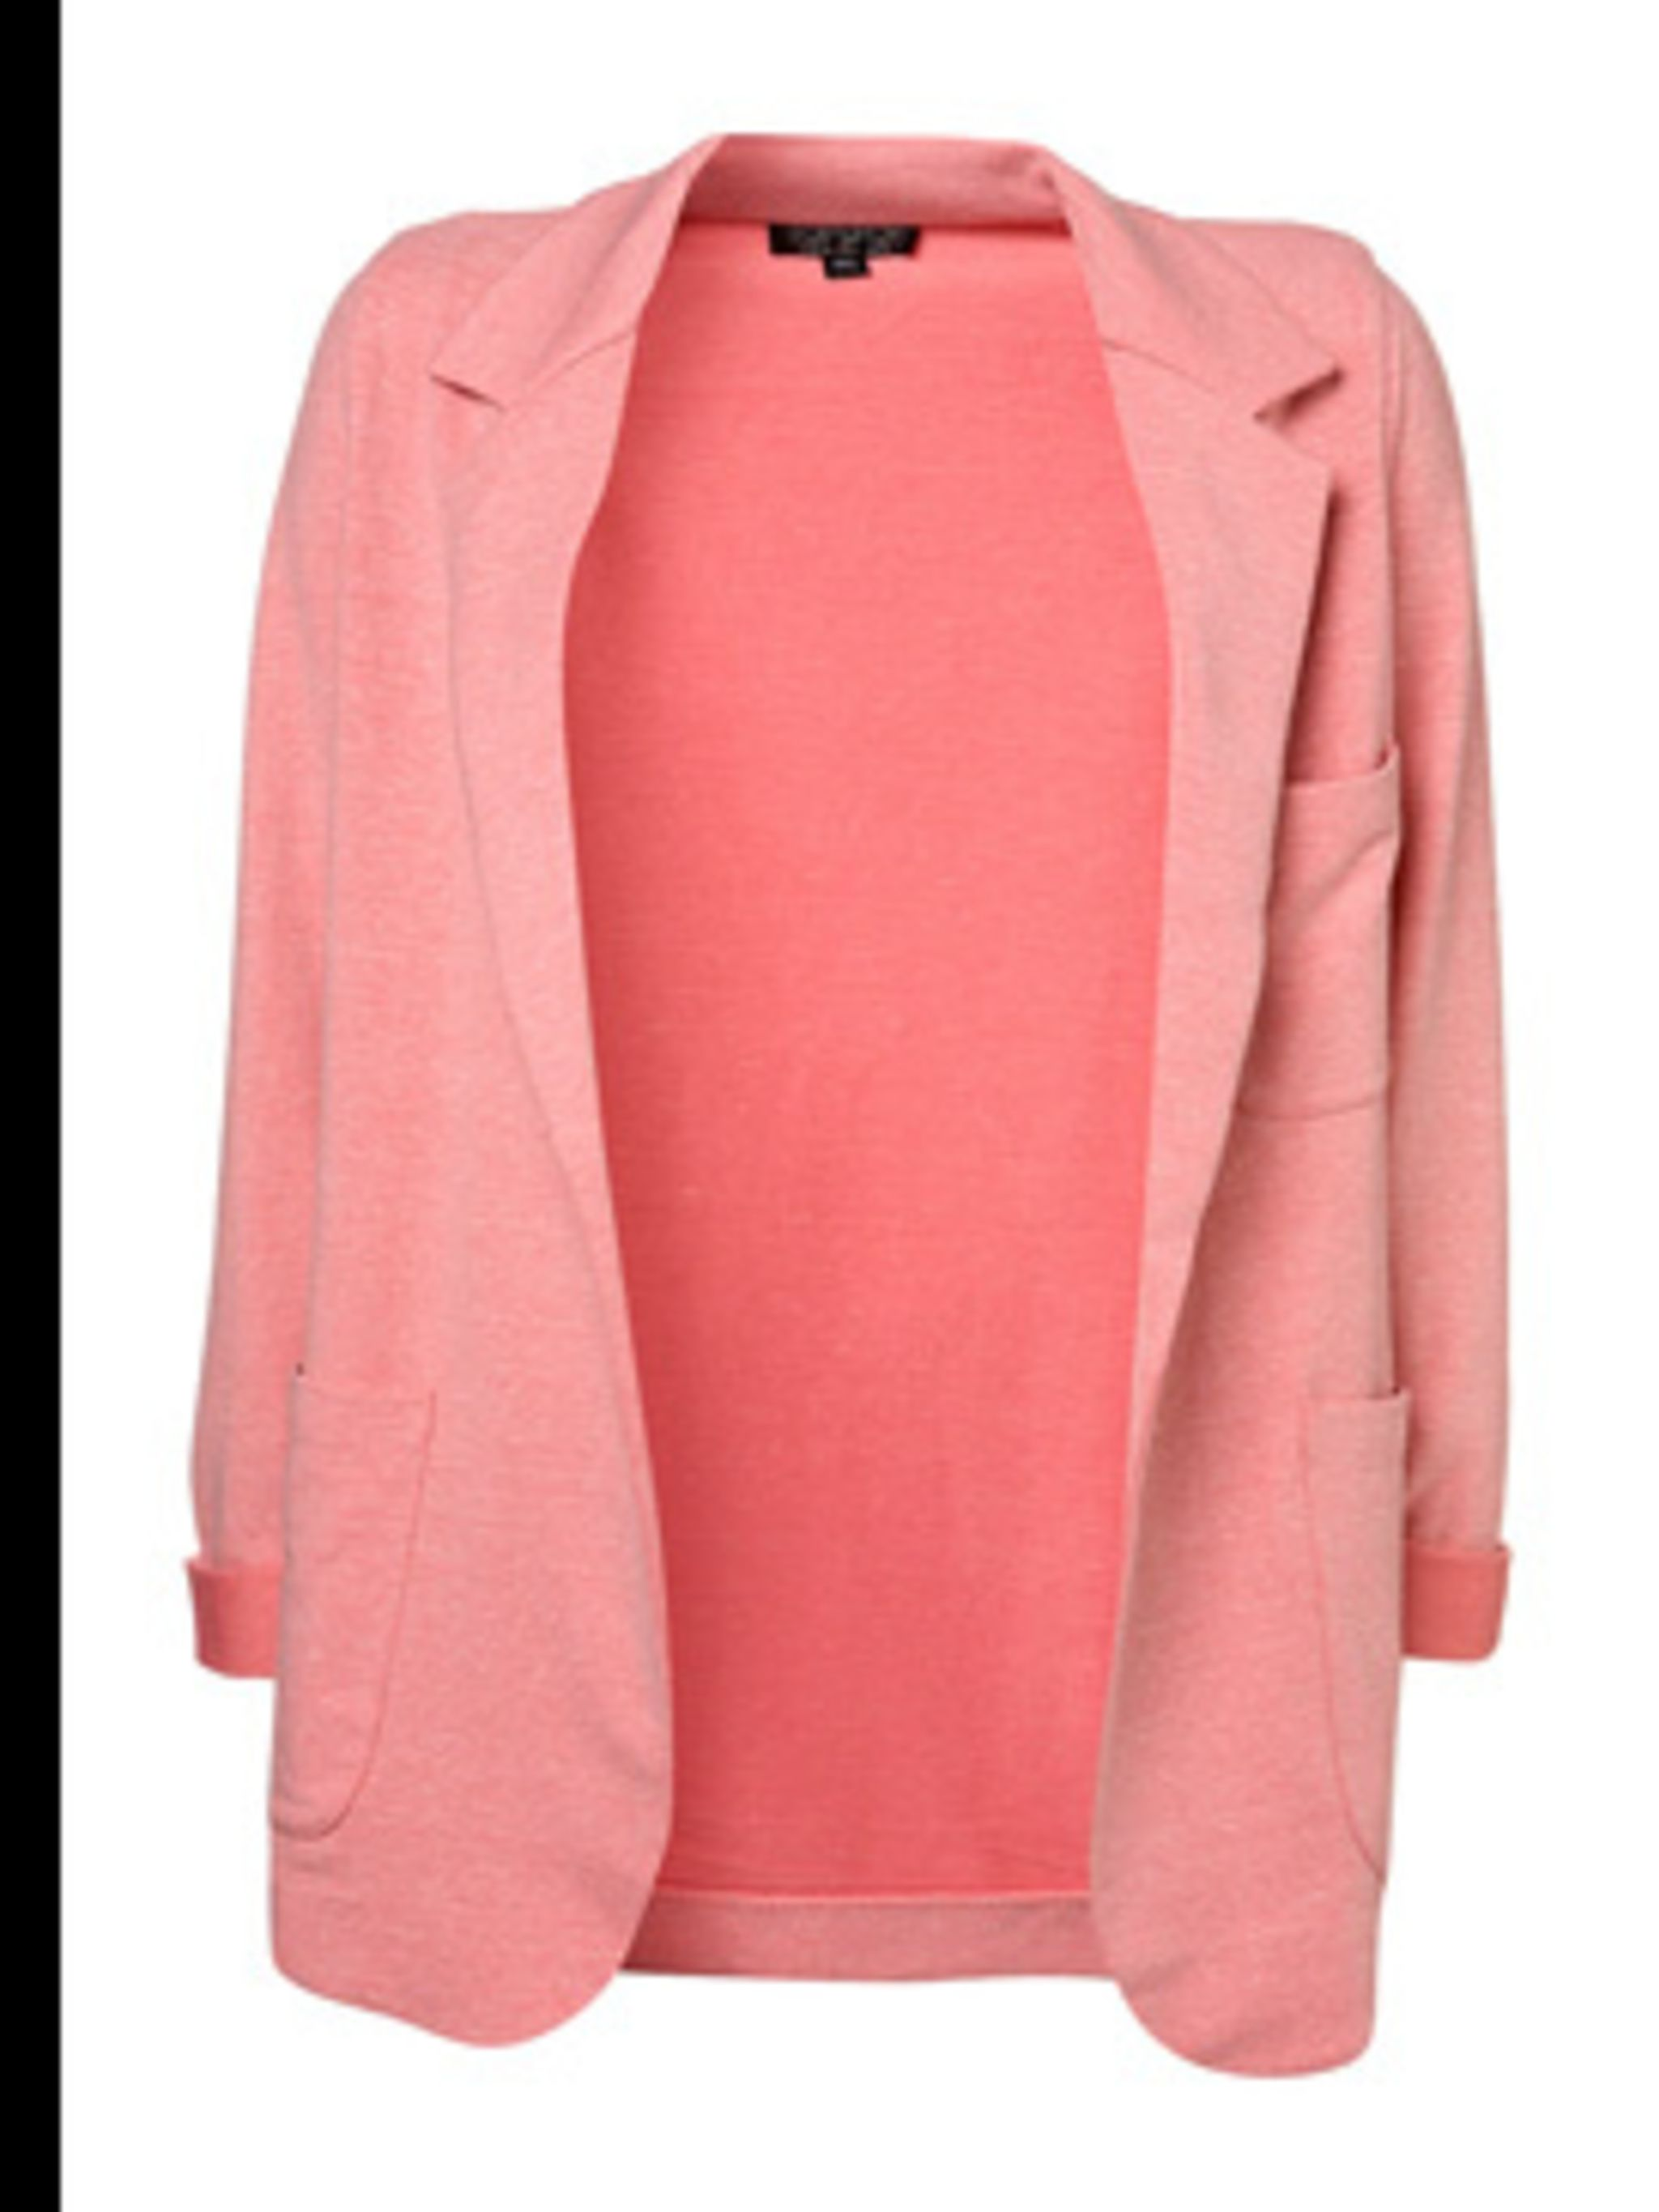 "<p>Casual coral jacket, £40, by <a href=""http://www.topshop.com/webapp/wcs/stores/servlet/CategoryDisplay?catalogId=19551&amp&#x3B;storeId=12556&amp&#x3B;categoryId=42347&amp&#x3B;langId=-1&amp&#x3B;top=Y"">Topshop</a></p>"